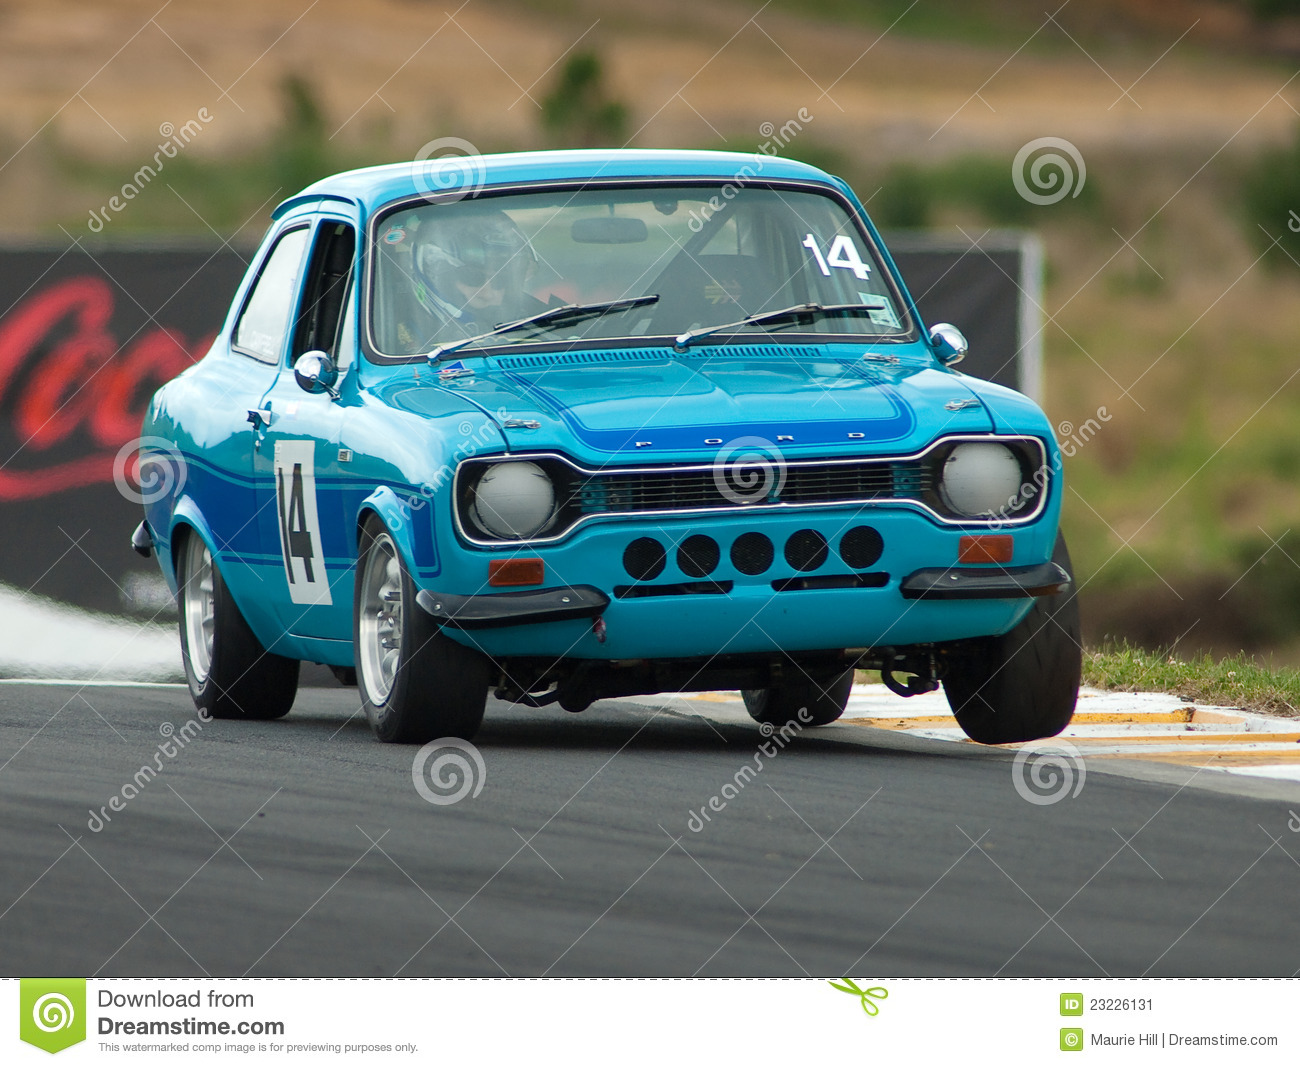 Motorsport 1974 Ford Escort Mk1 RS2000